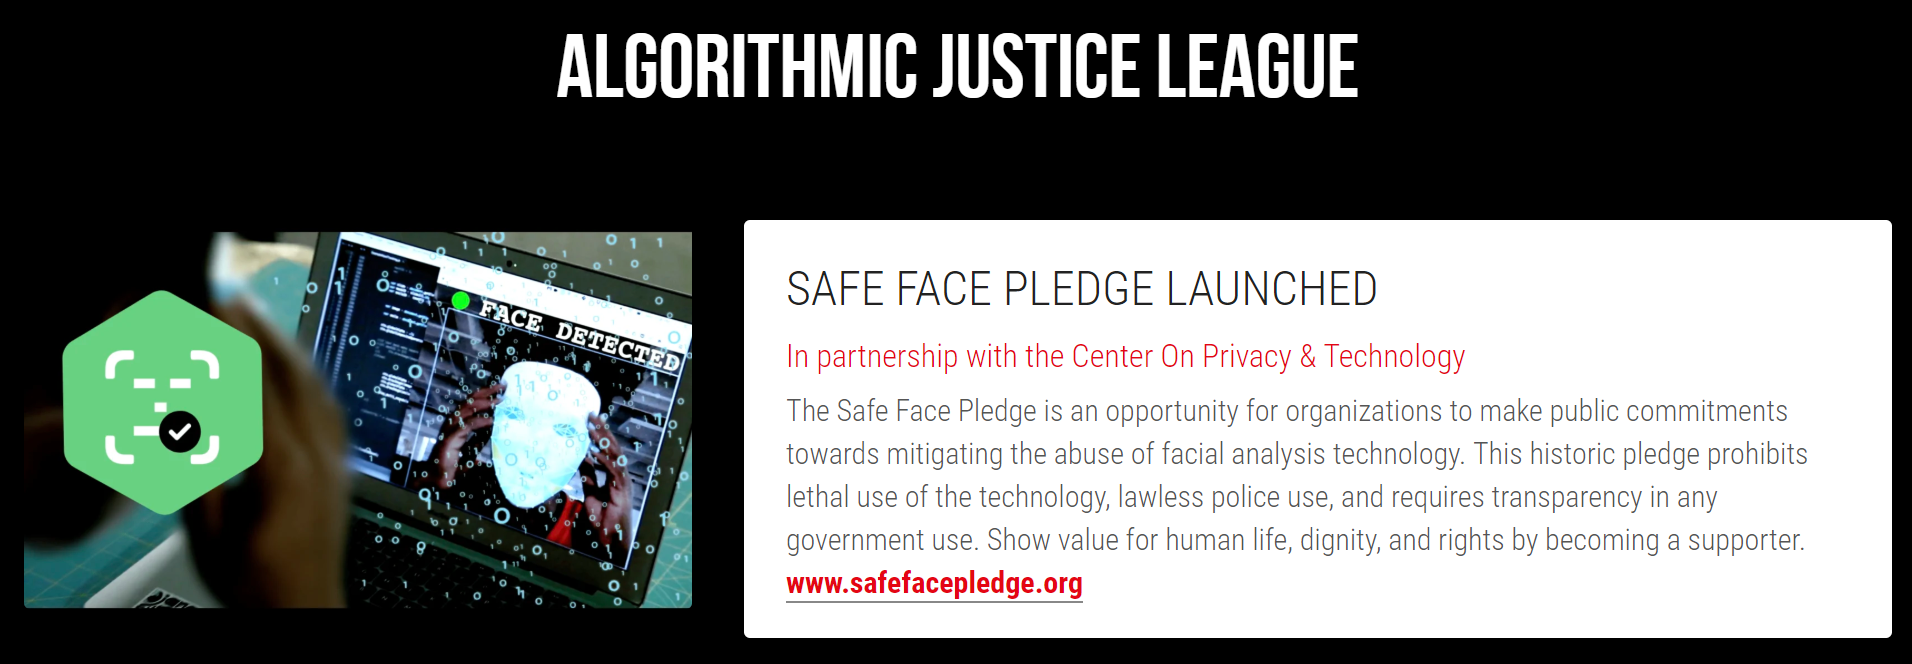 Launch of the SafeFace Pledge